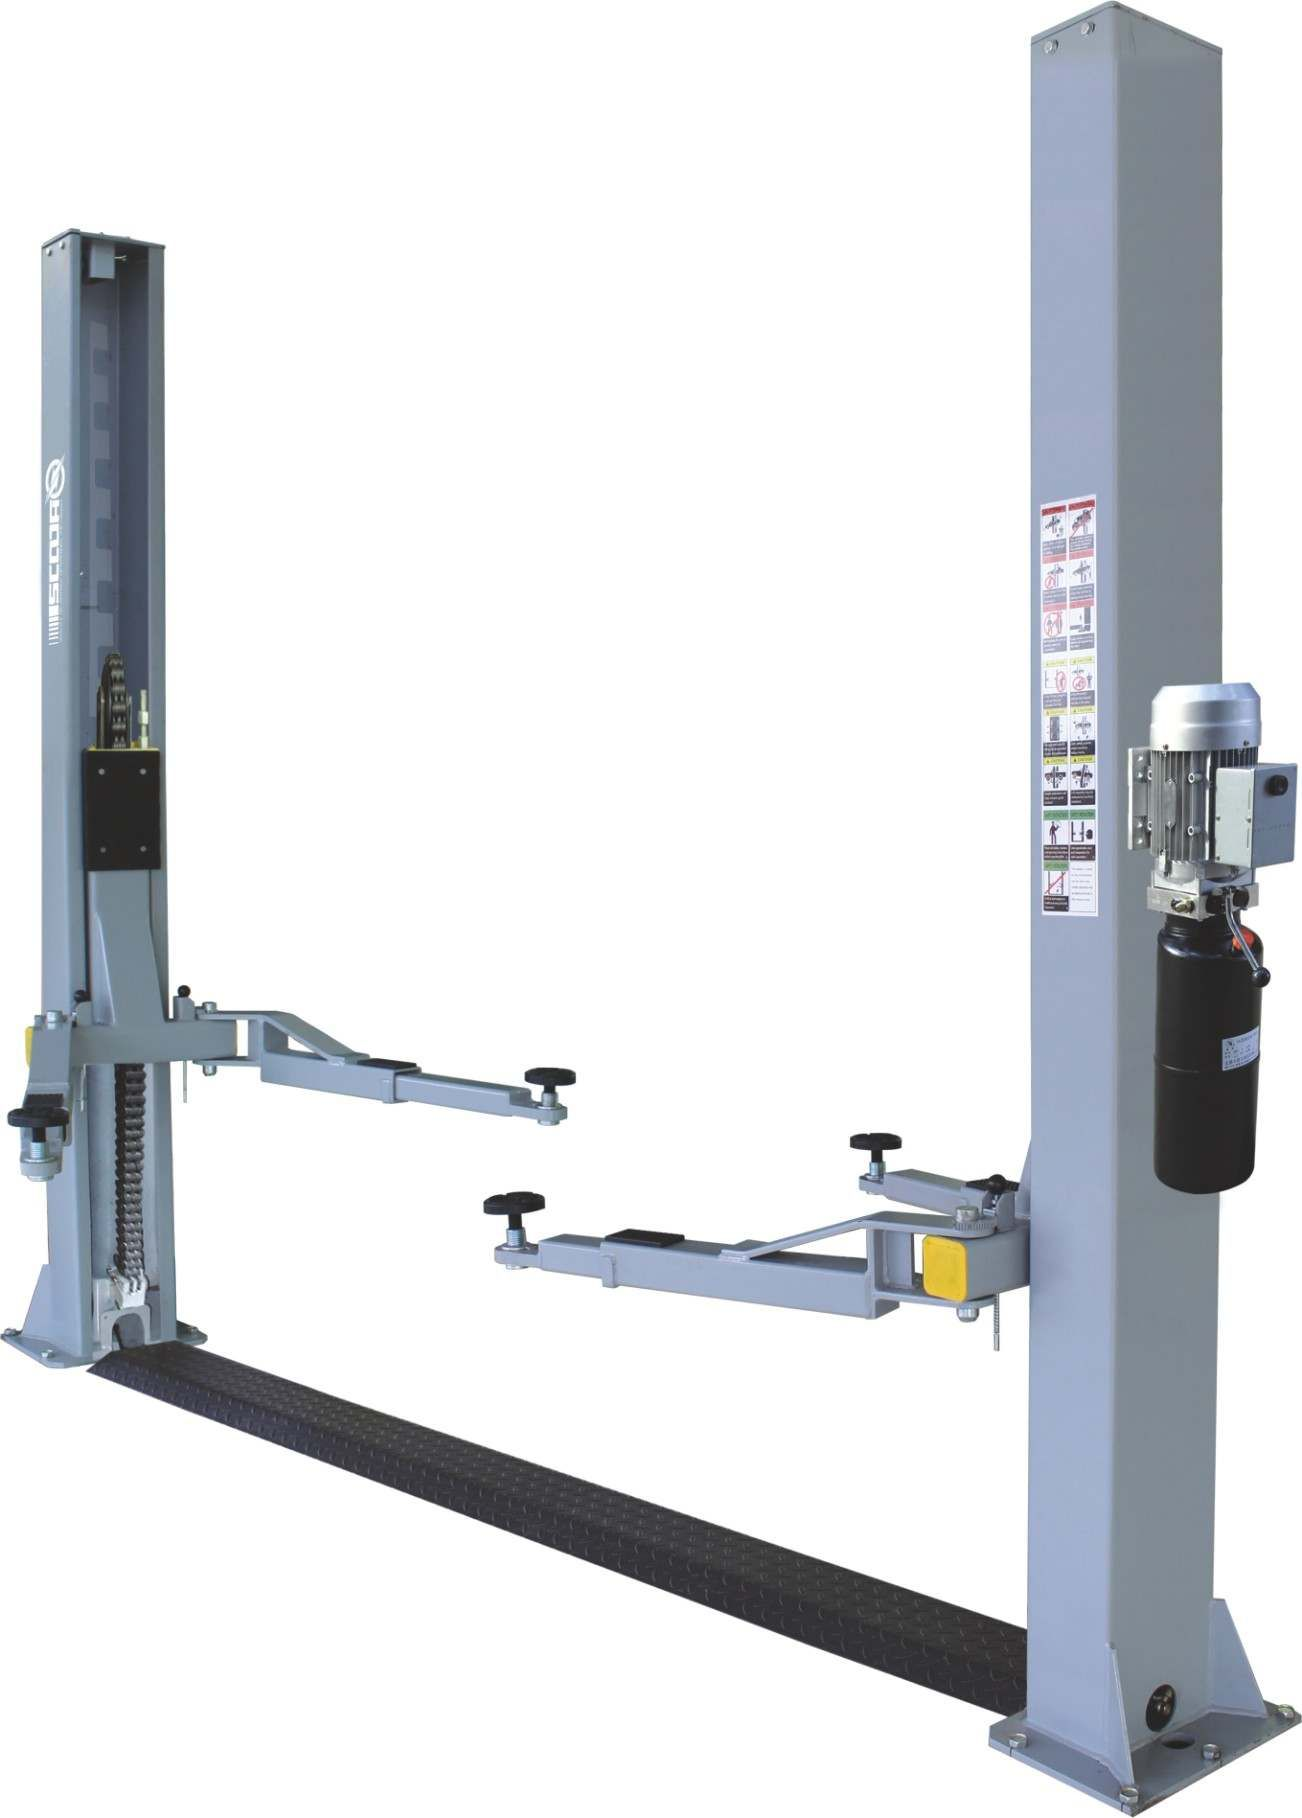 two post lift with a base plate lifting capacity of 4 ton